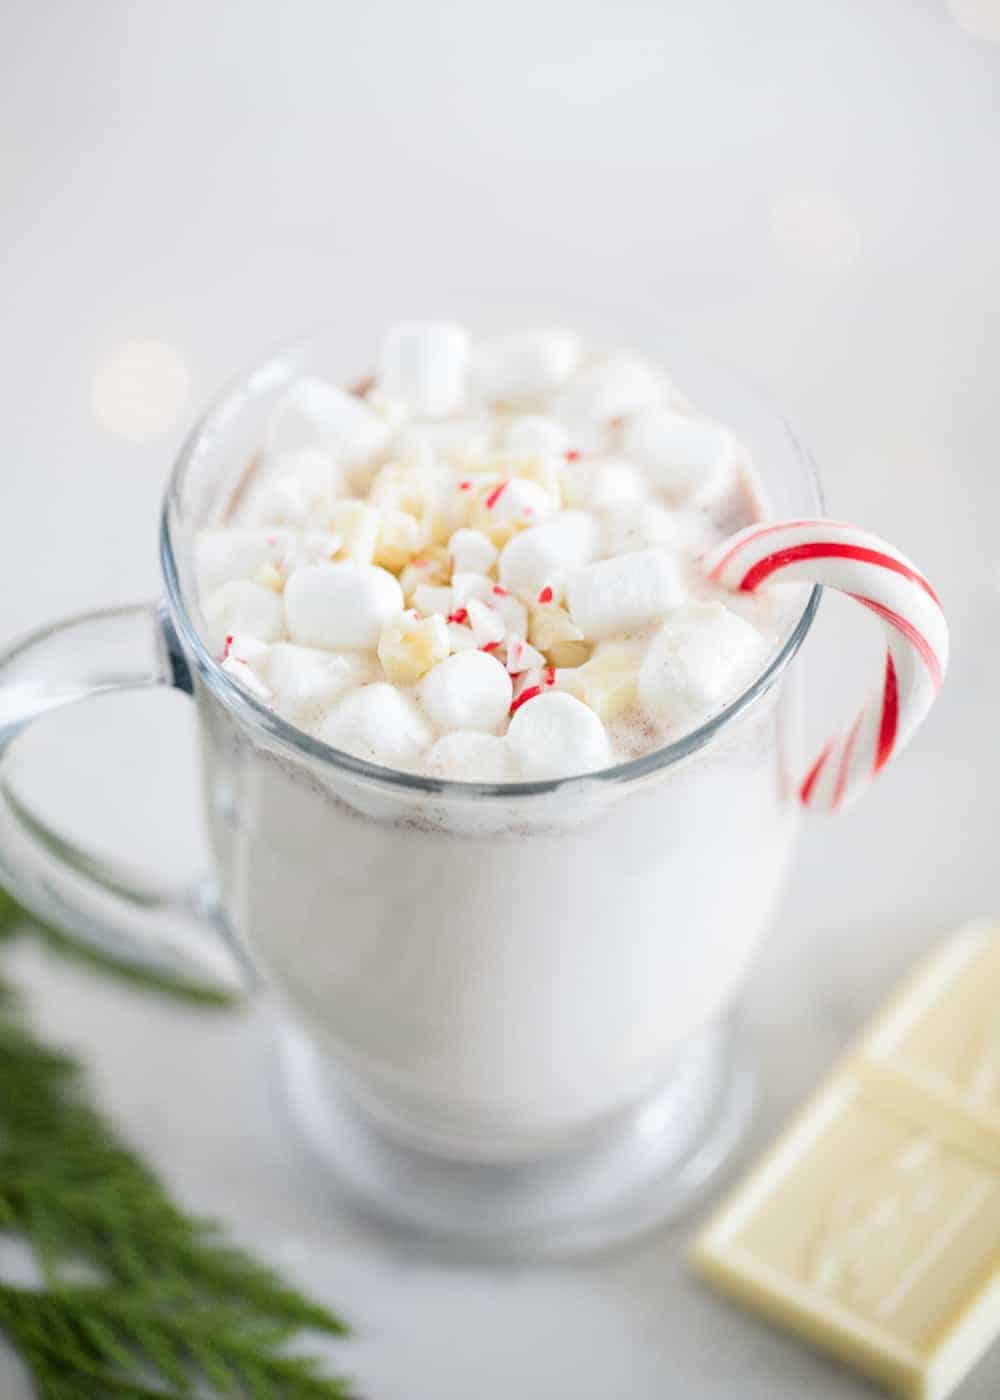 snickerdoodle hot chocolate in a glass mug with mini marshmallows and a candy cane